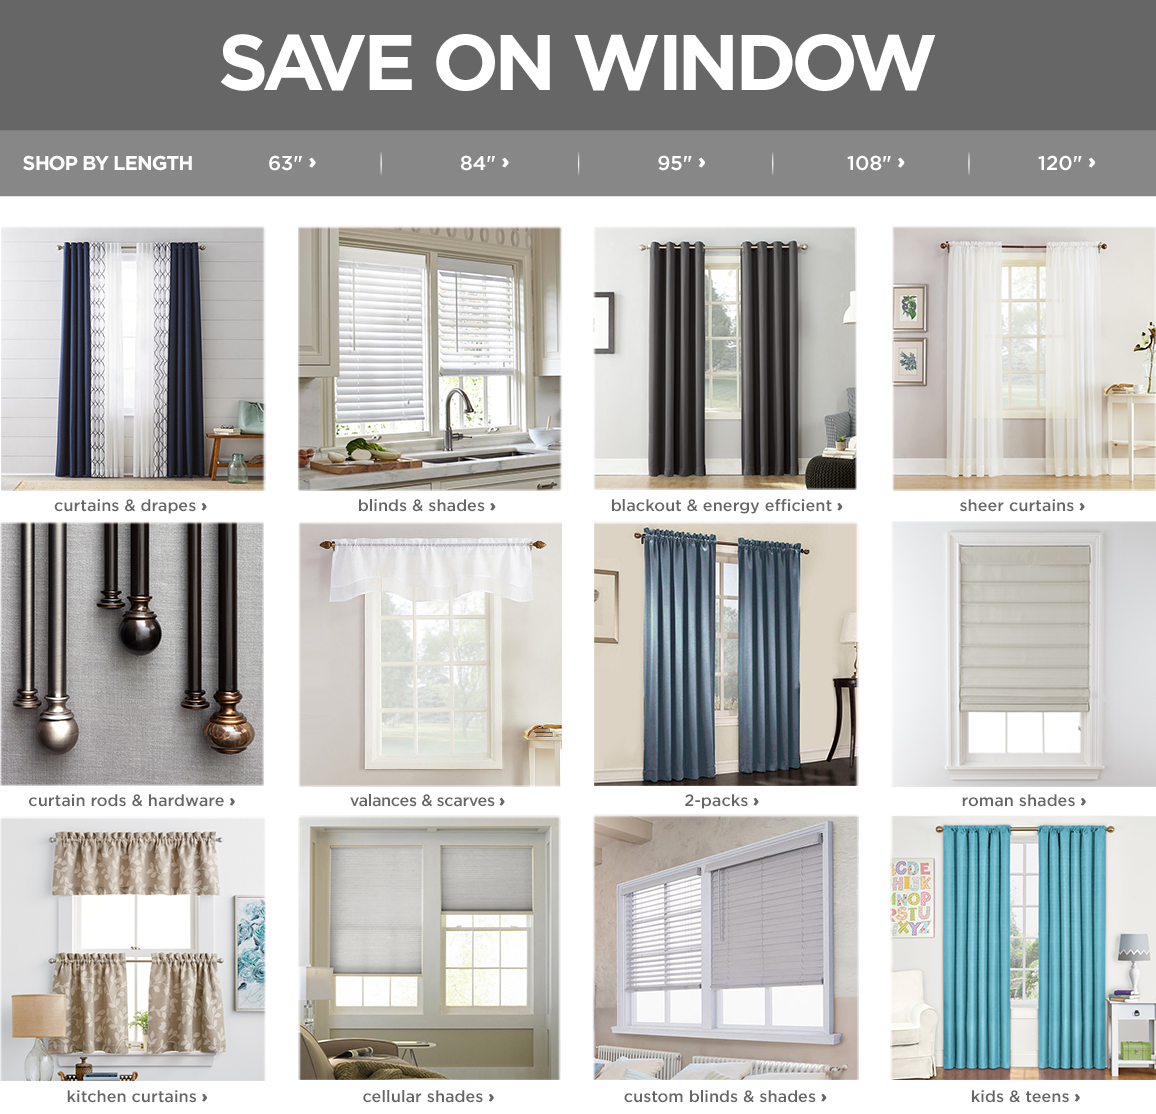 Window Treatments, Curtains, Blinds & Curtain Rods - JCPenney